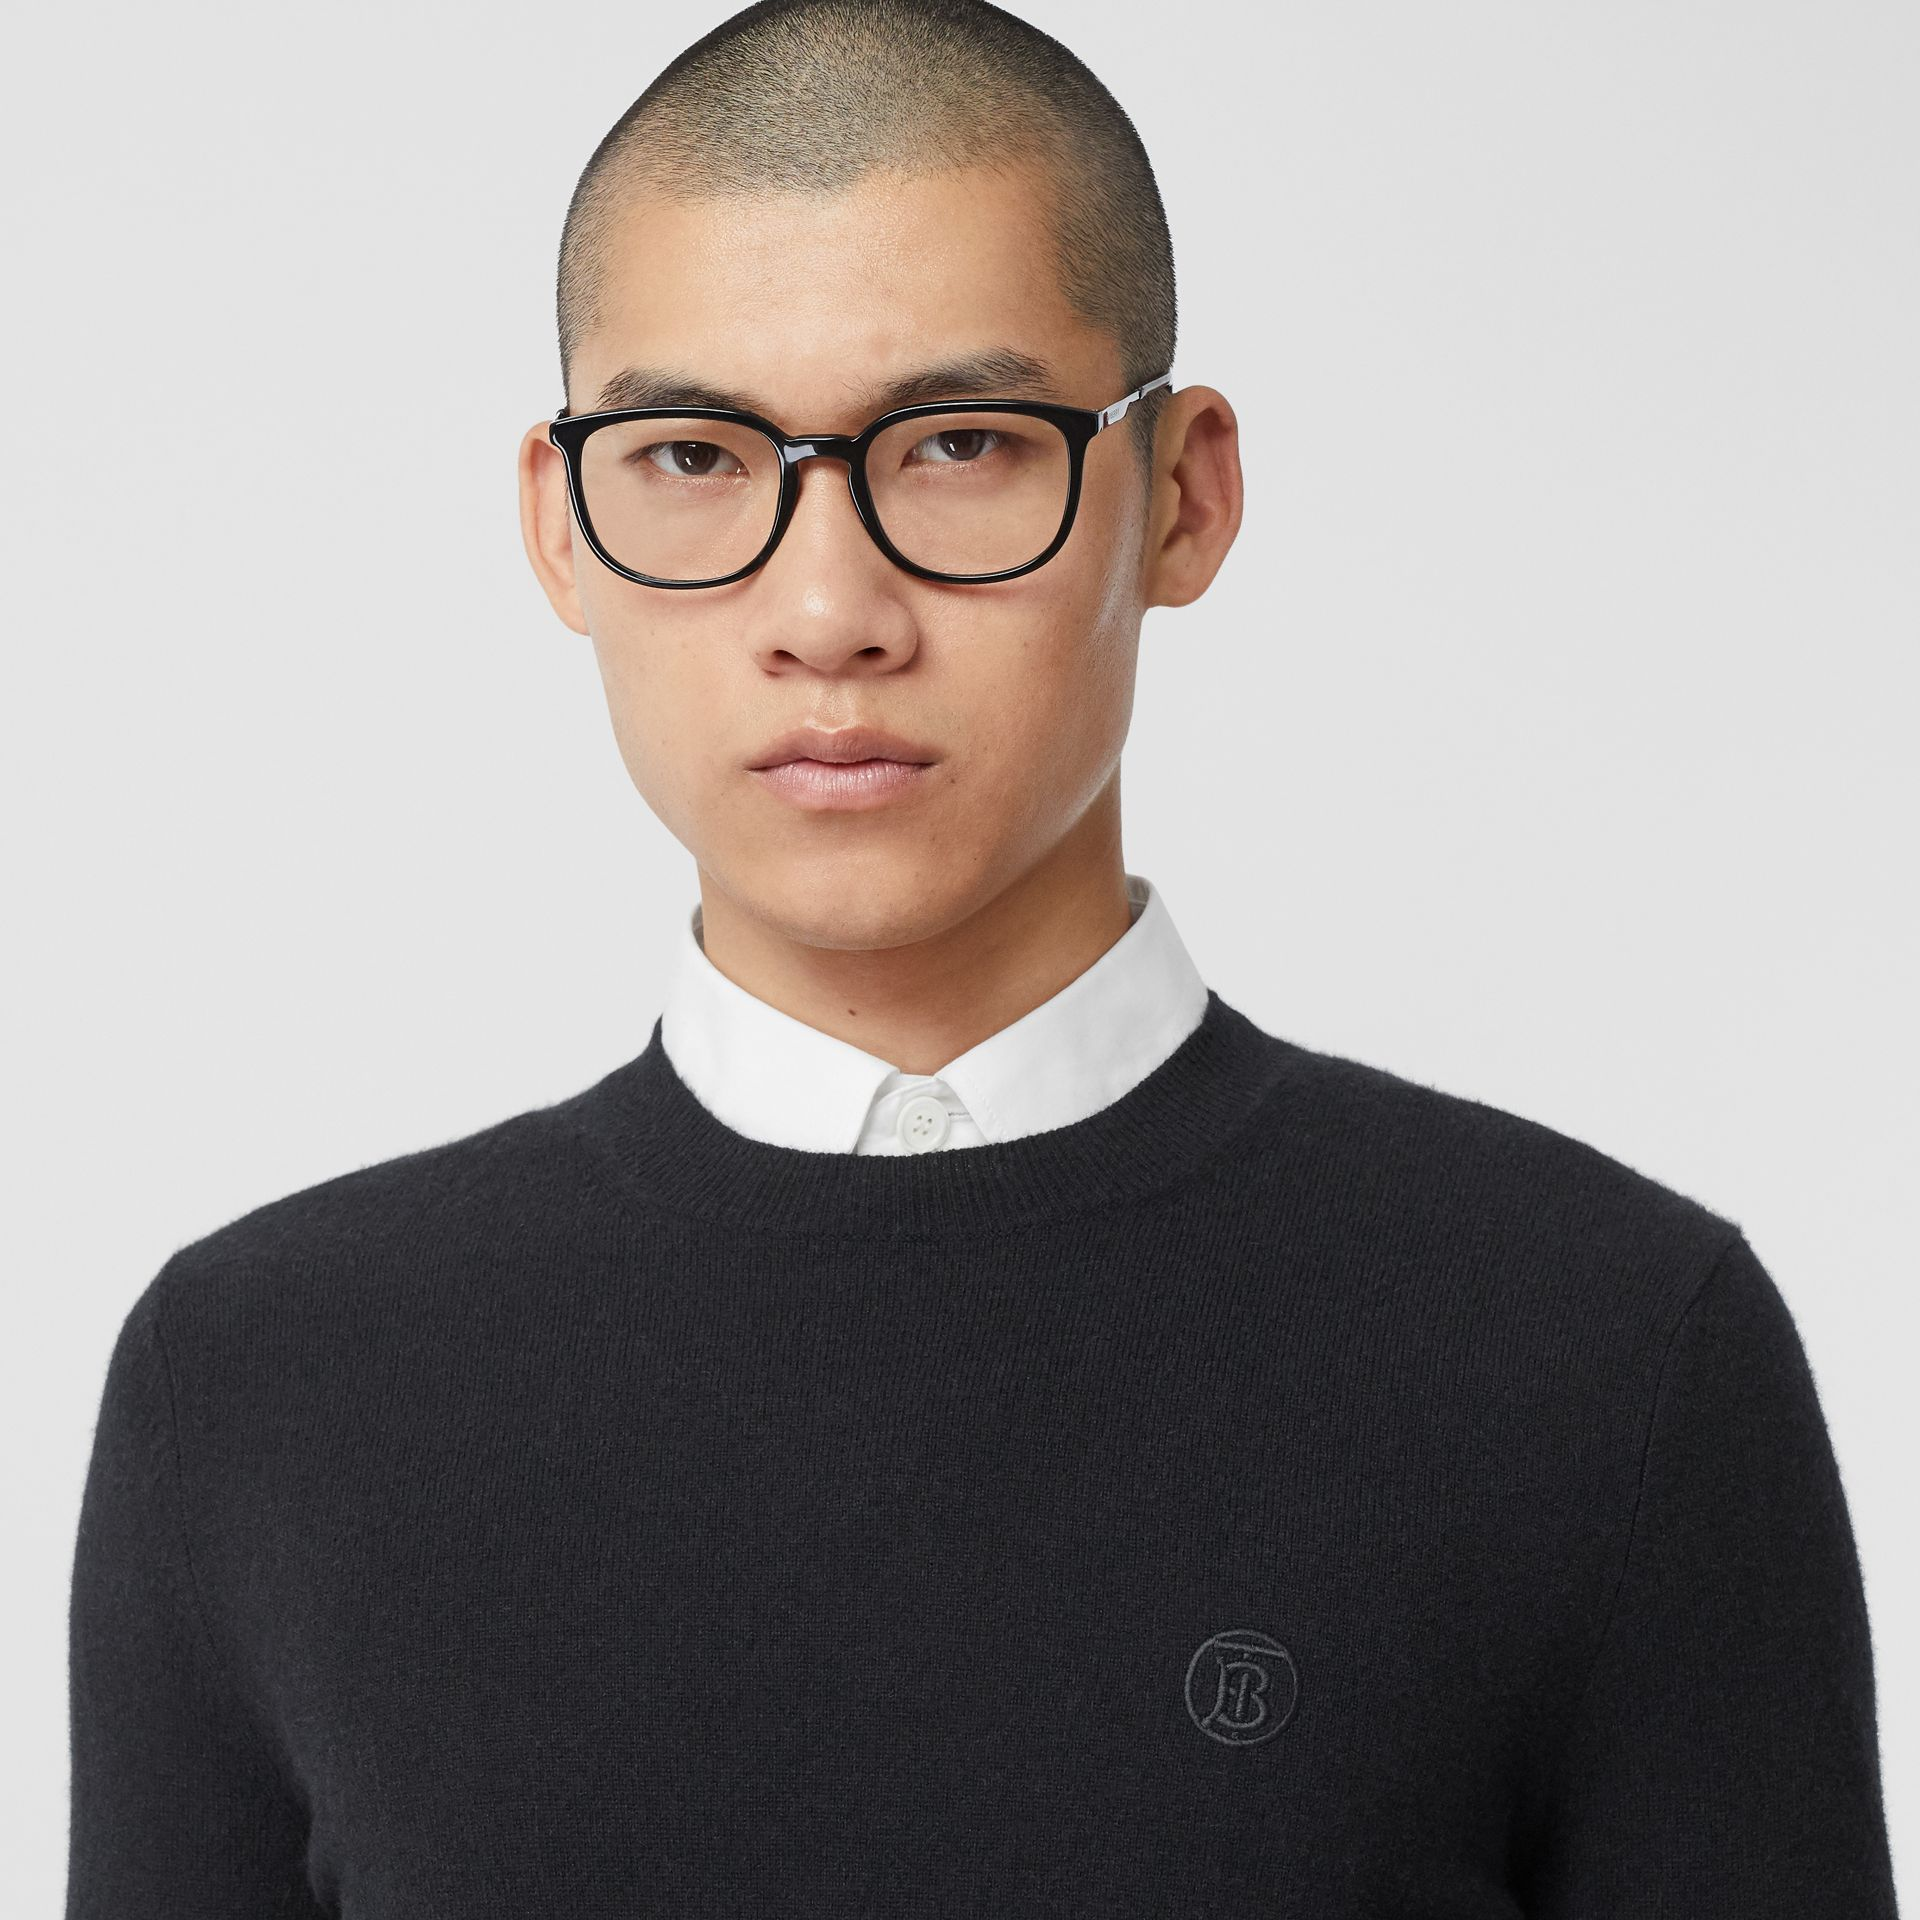 Monogram Motif Cashmere Sweater in Black - Men | Burberry Canada - gallery image 1